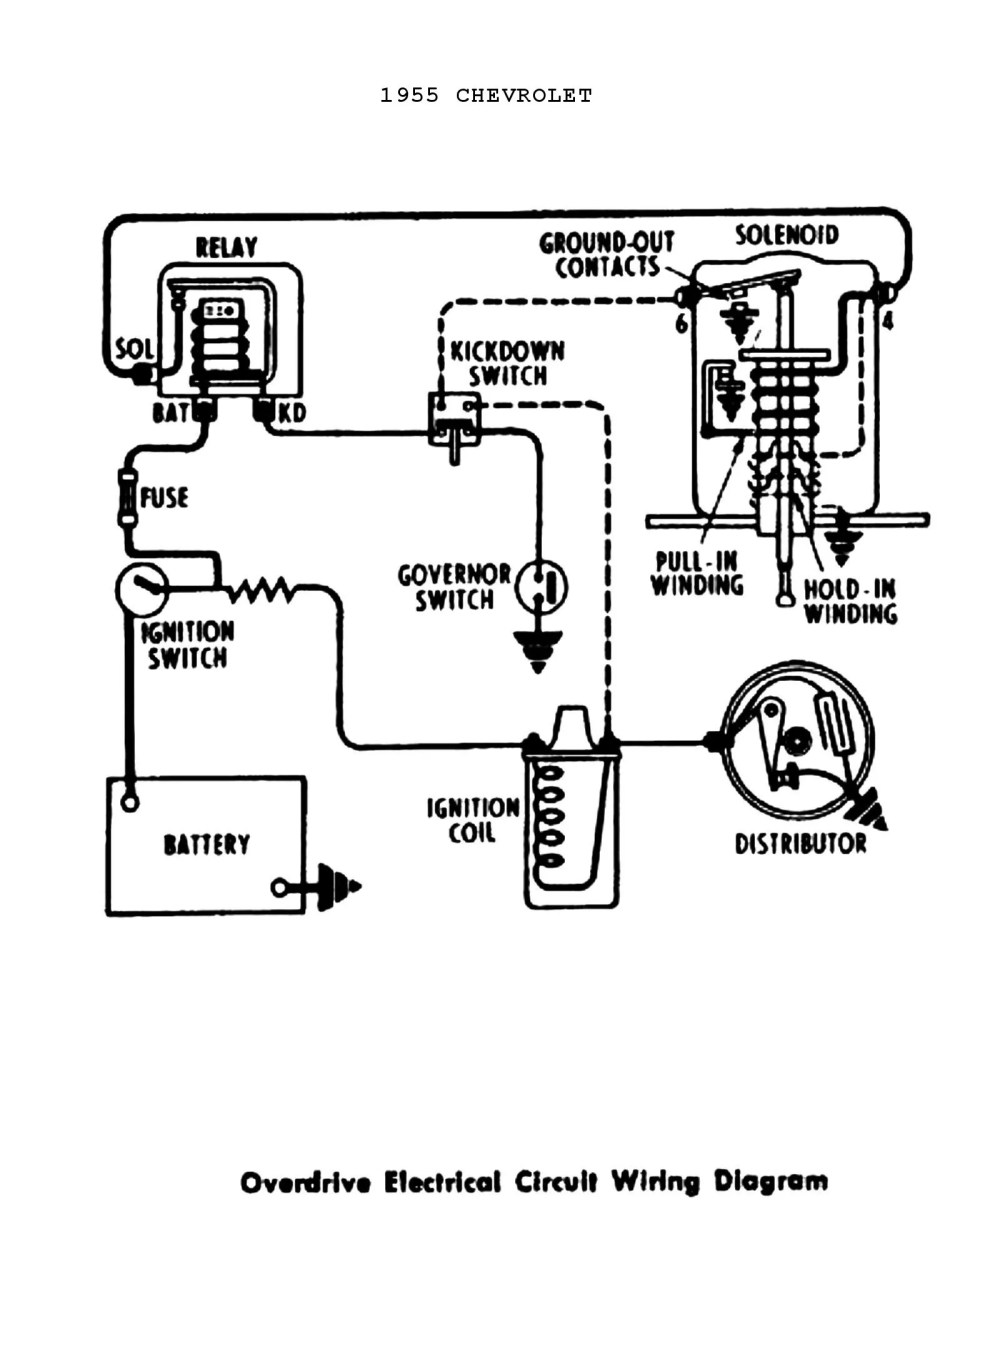 medium resolution of 1957 chevy 6 cylinder distributor wire diagram data wiring diagram57 chevy distributor wiring wiring diagram technic